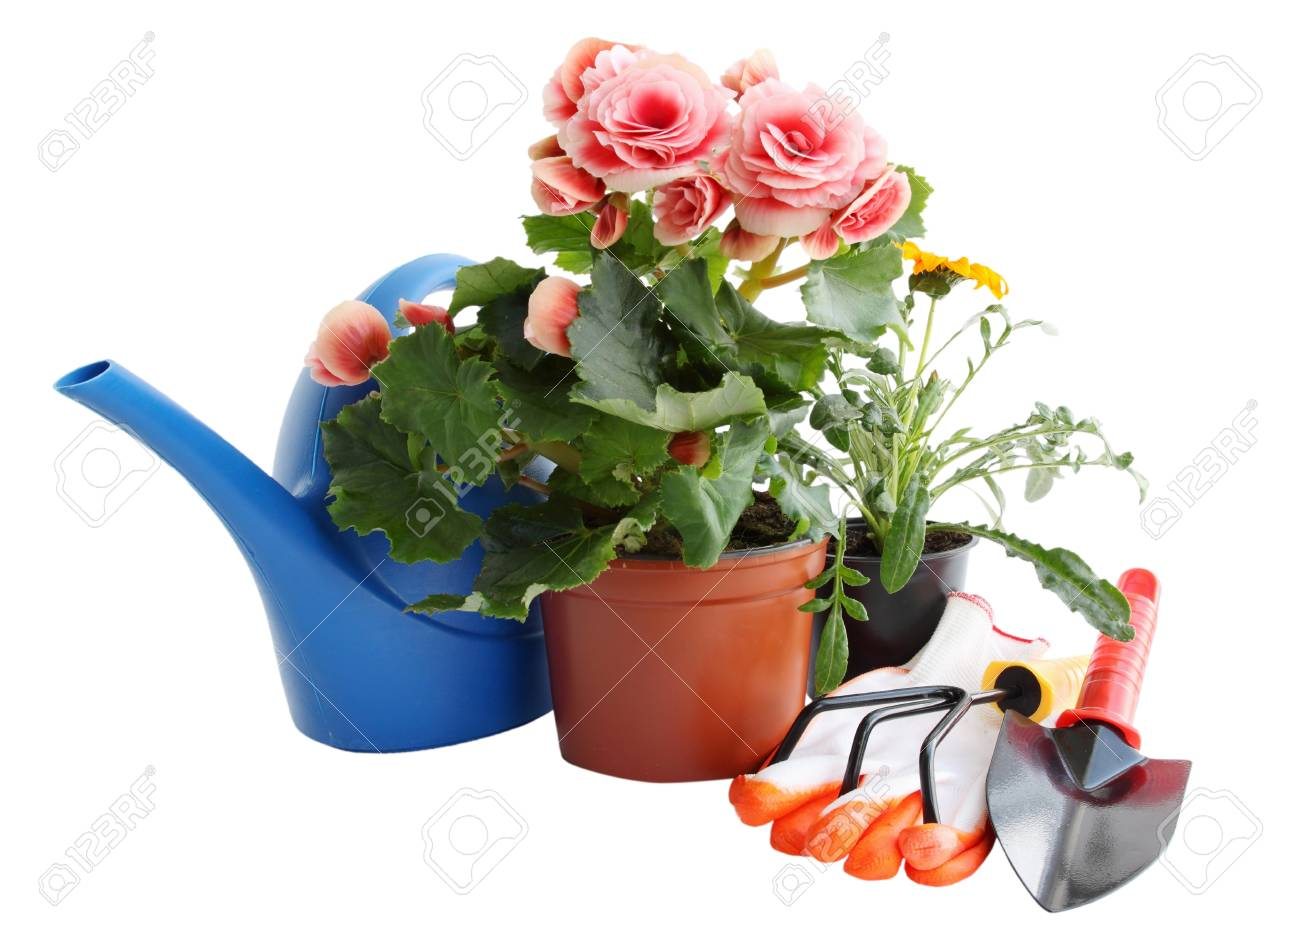 garden tools and flowers for planting in flower beds - 27415784